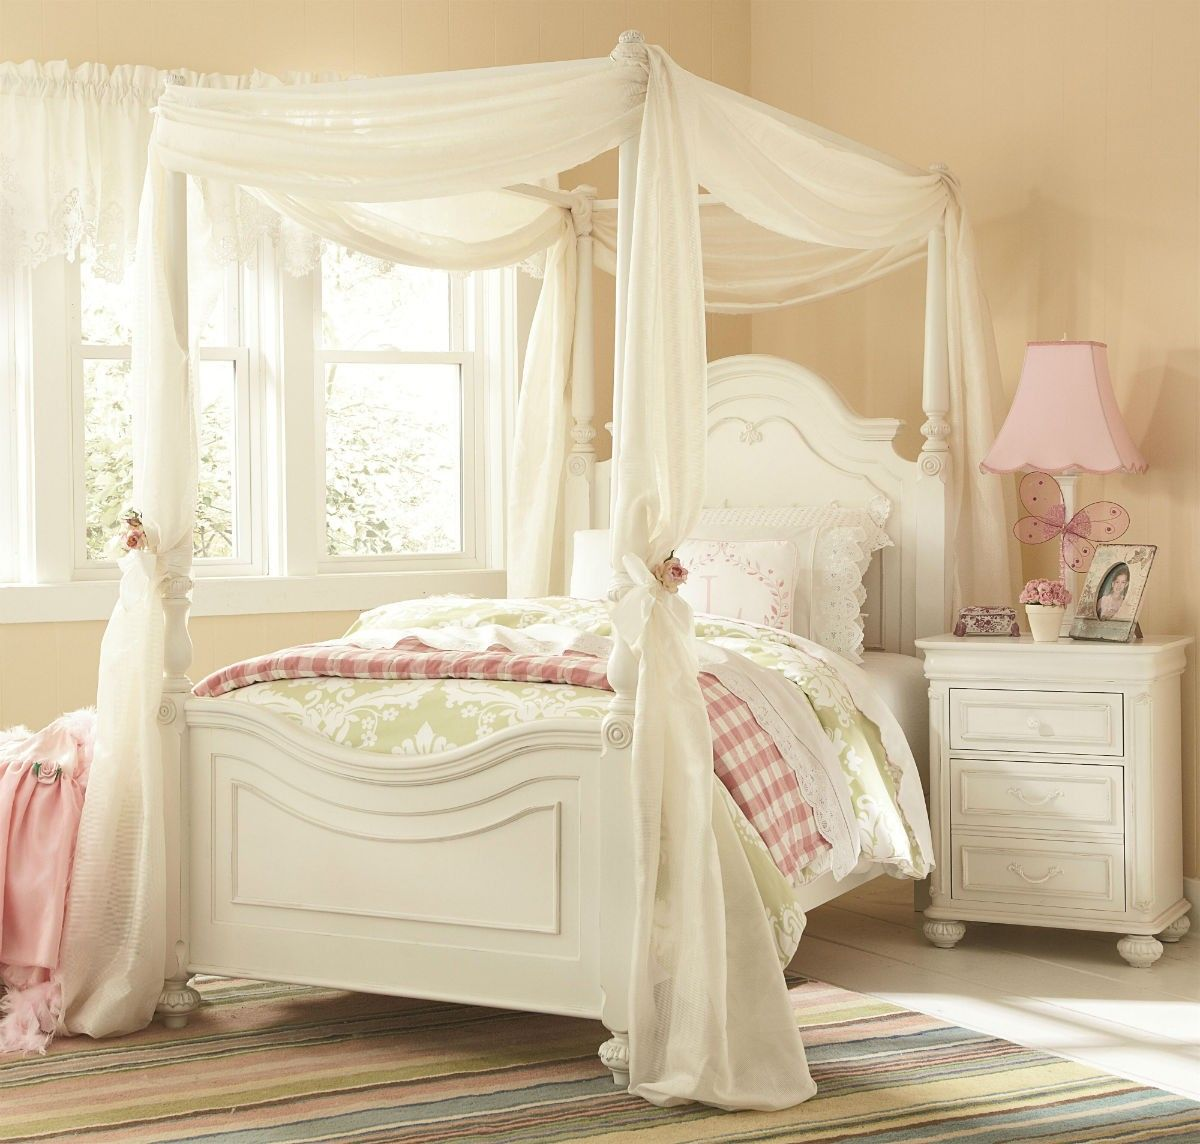 Girly Princess Bedroom Ideas: 19 Fabulous Canopy Bed Designs For Your Little Princess